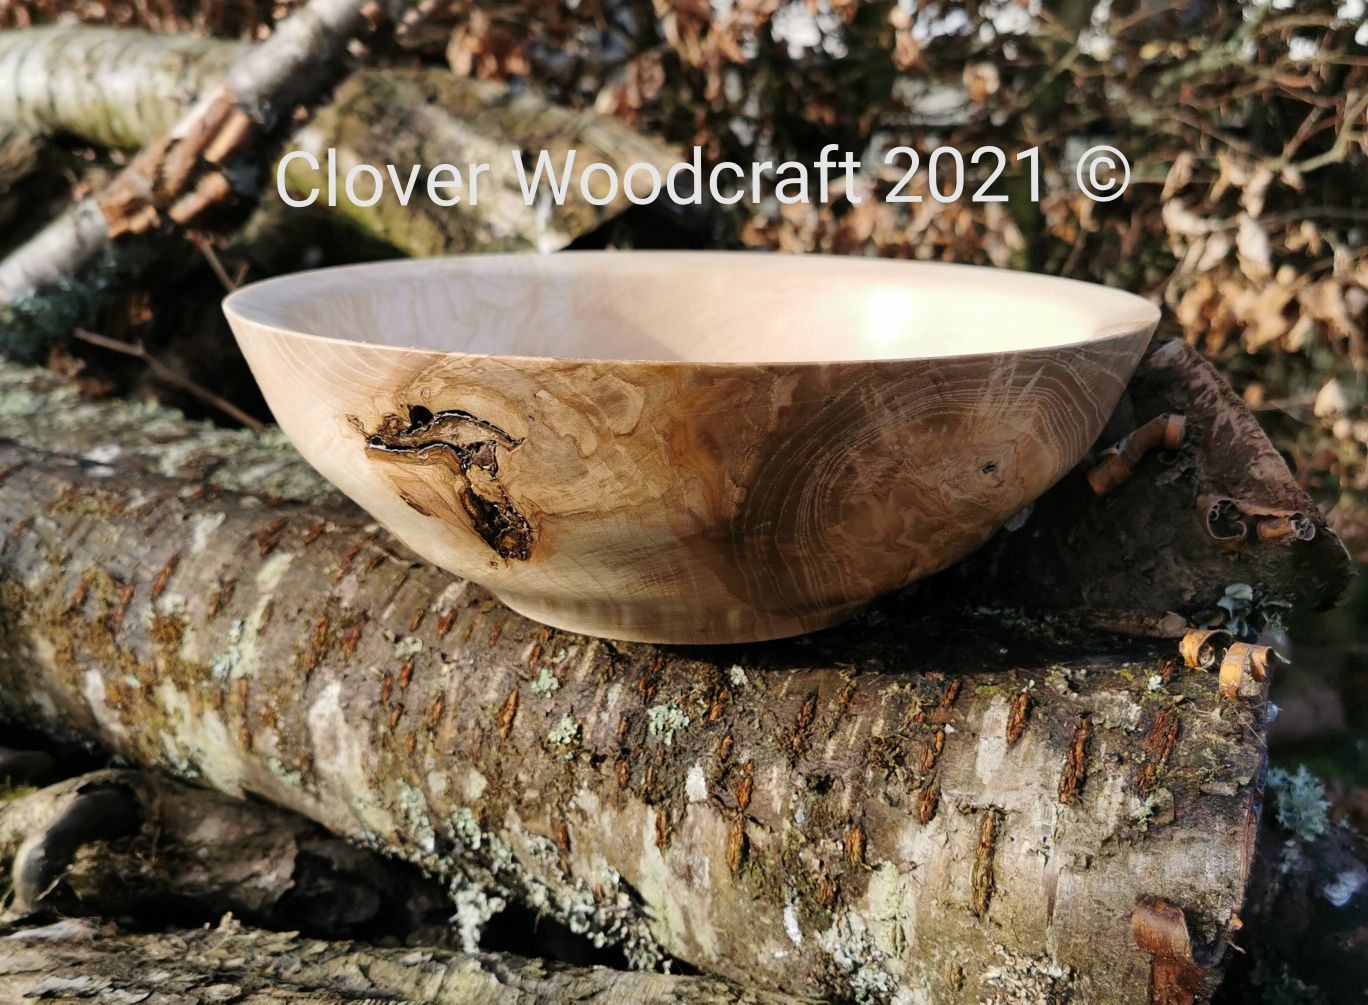 Irish Olive Ash Wood Turned Bowl Featuring Natural Voids